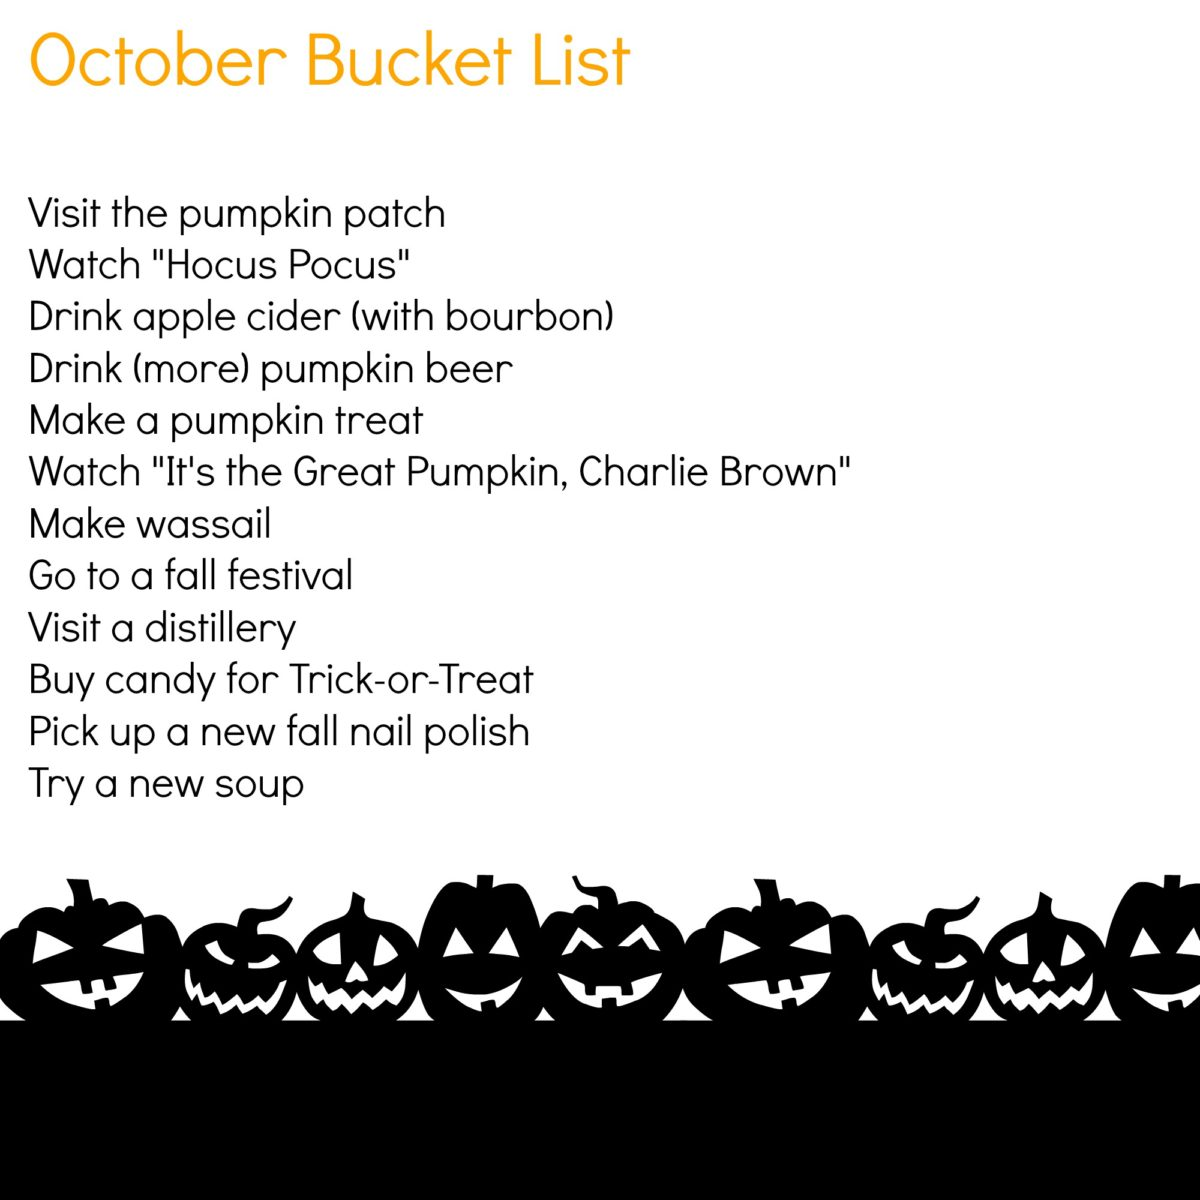 october-bucket-list